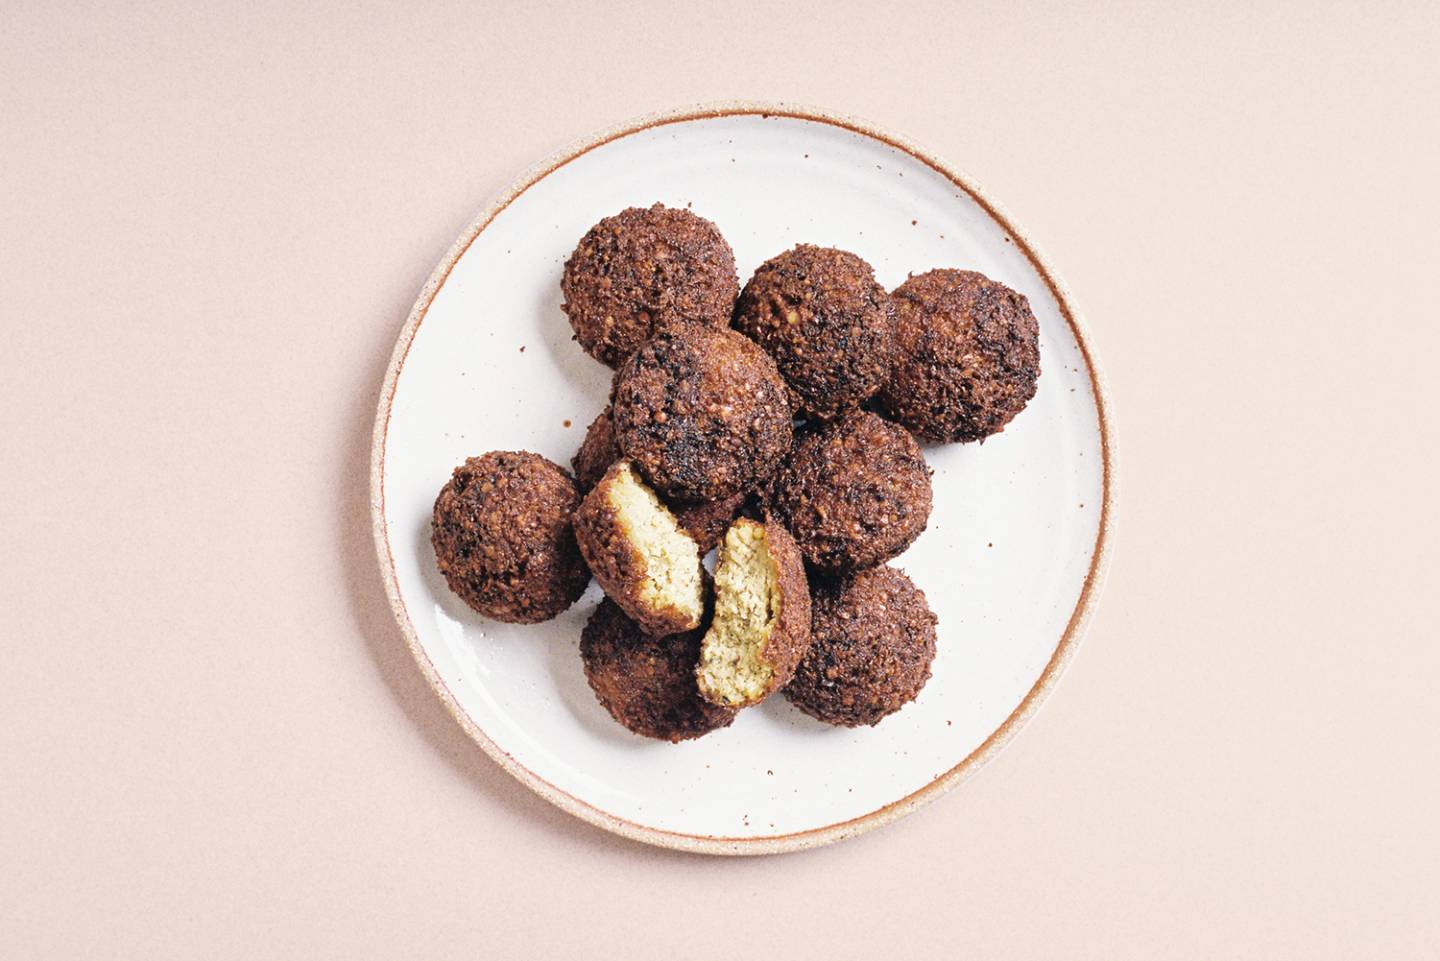 Lindsay Recipe | A1 Bakery's Famed Lebanese Falafel | Photo by Beth Wilkinson for Lindsay